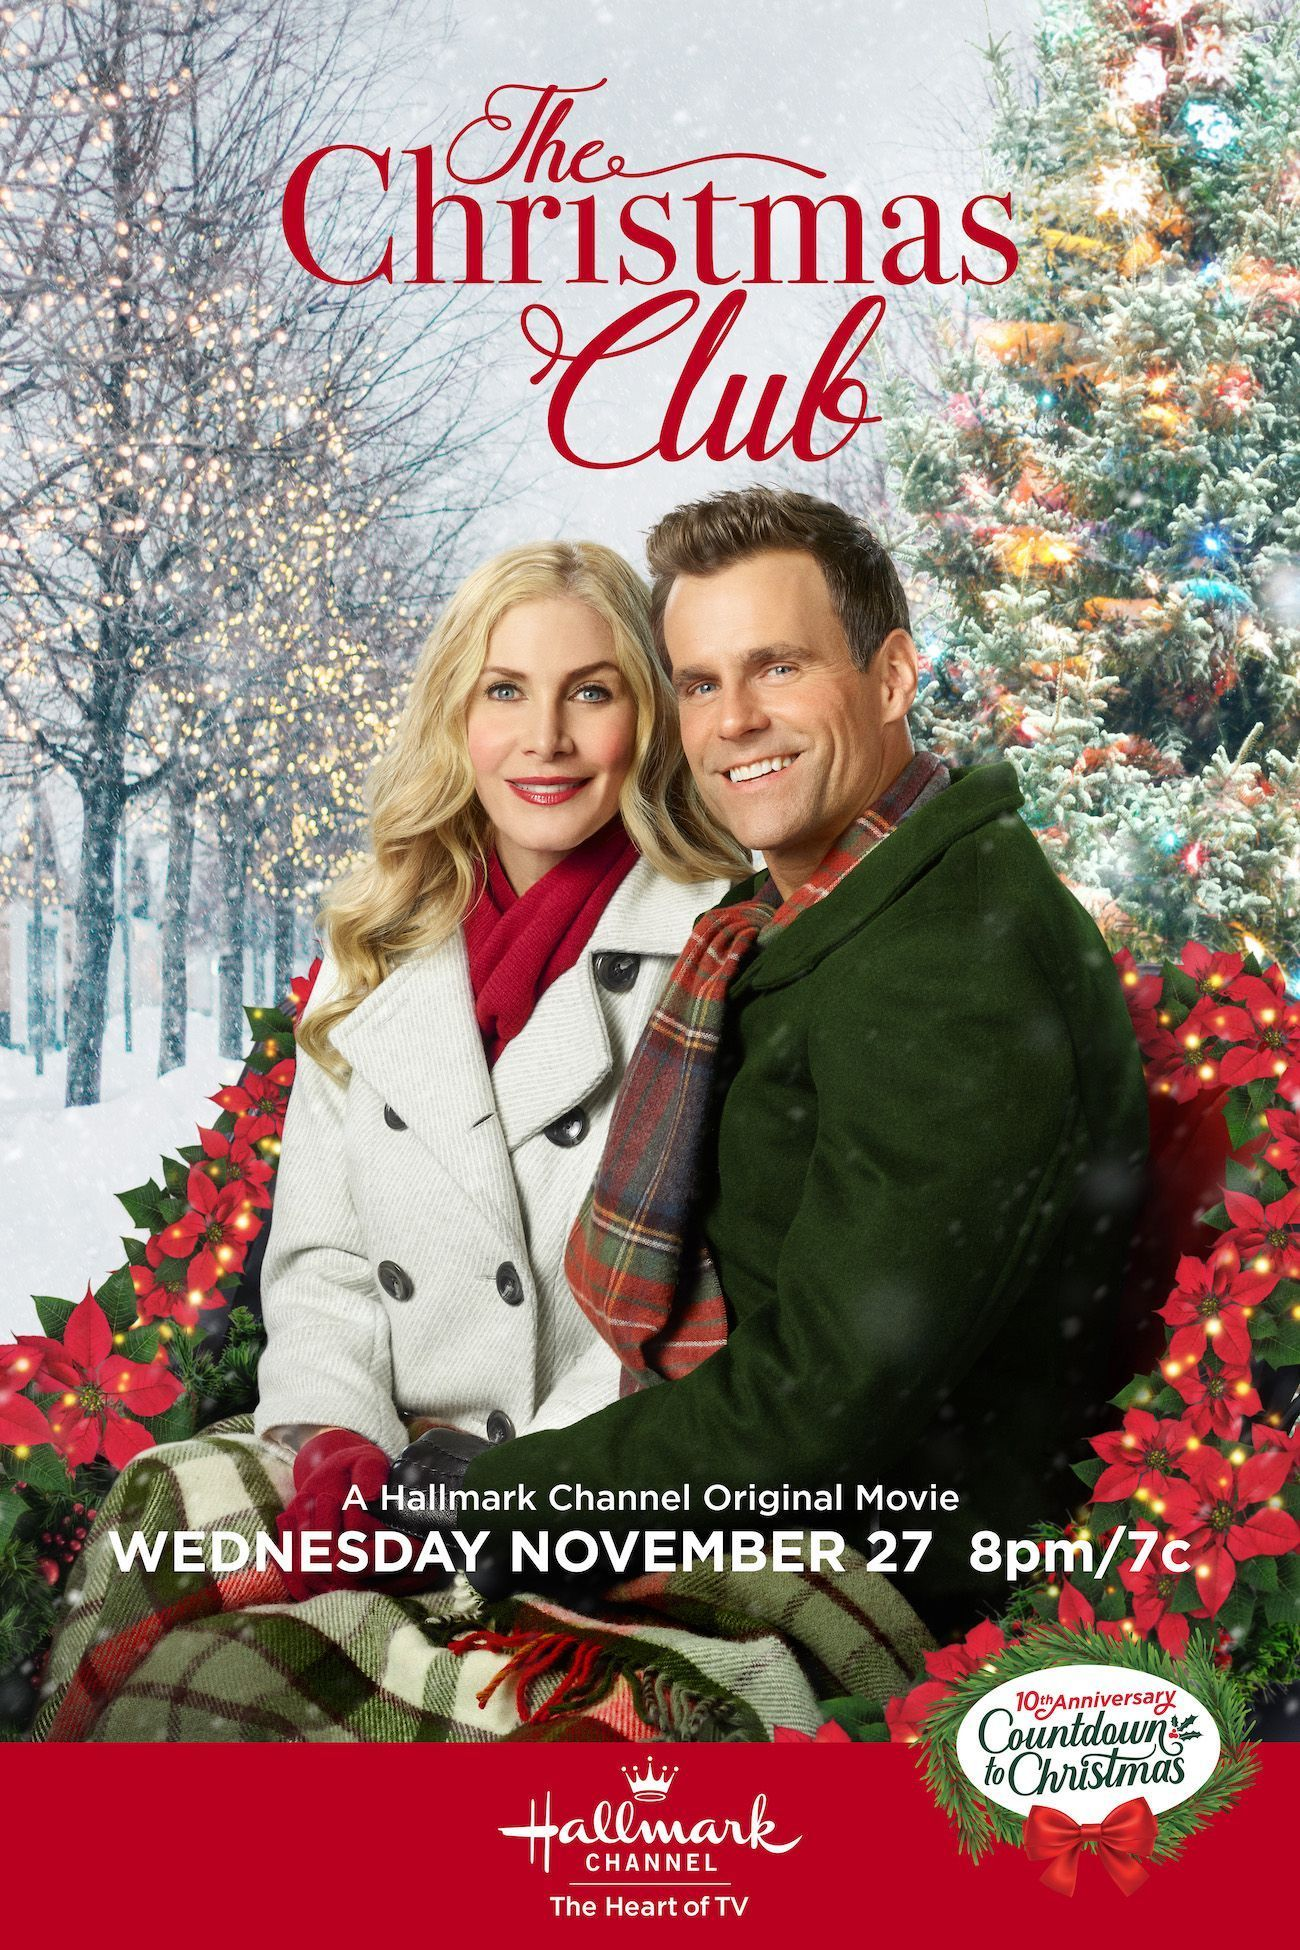 Cameron Mathison And Elizabeth Mitchell Star In The Christmas